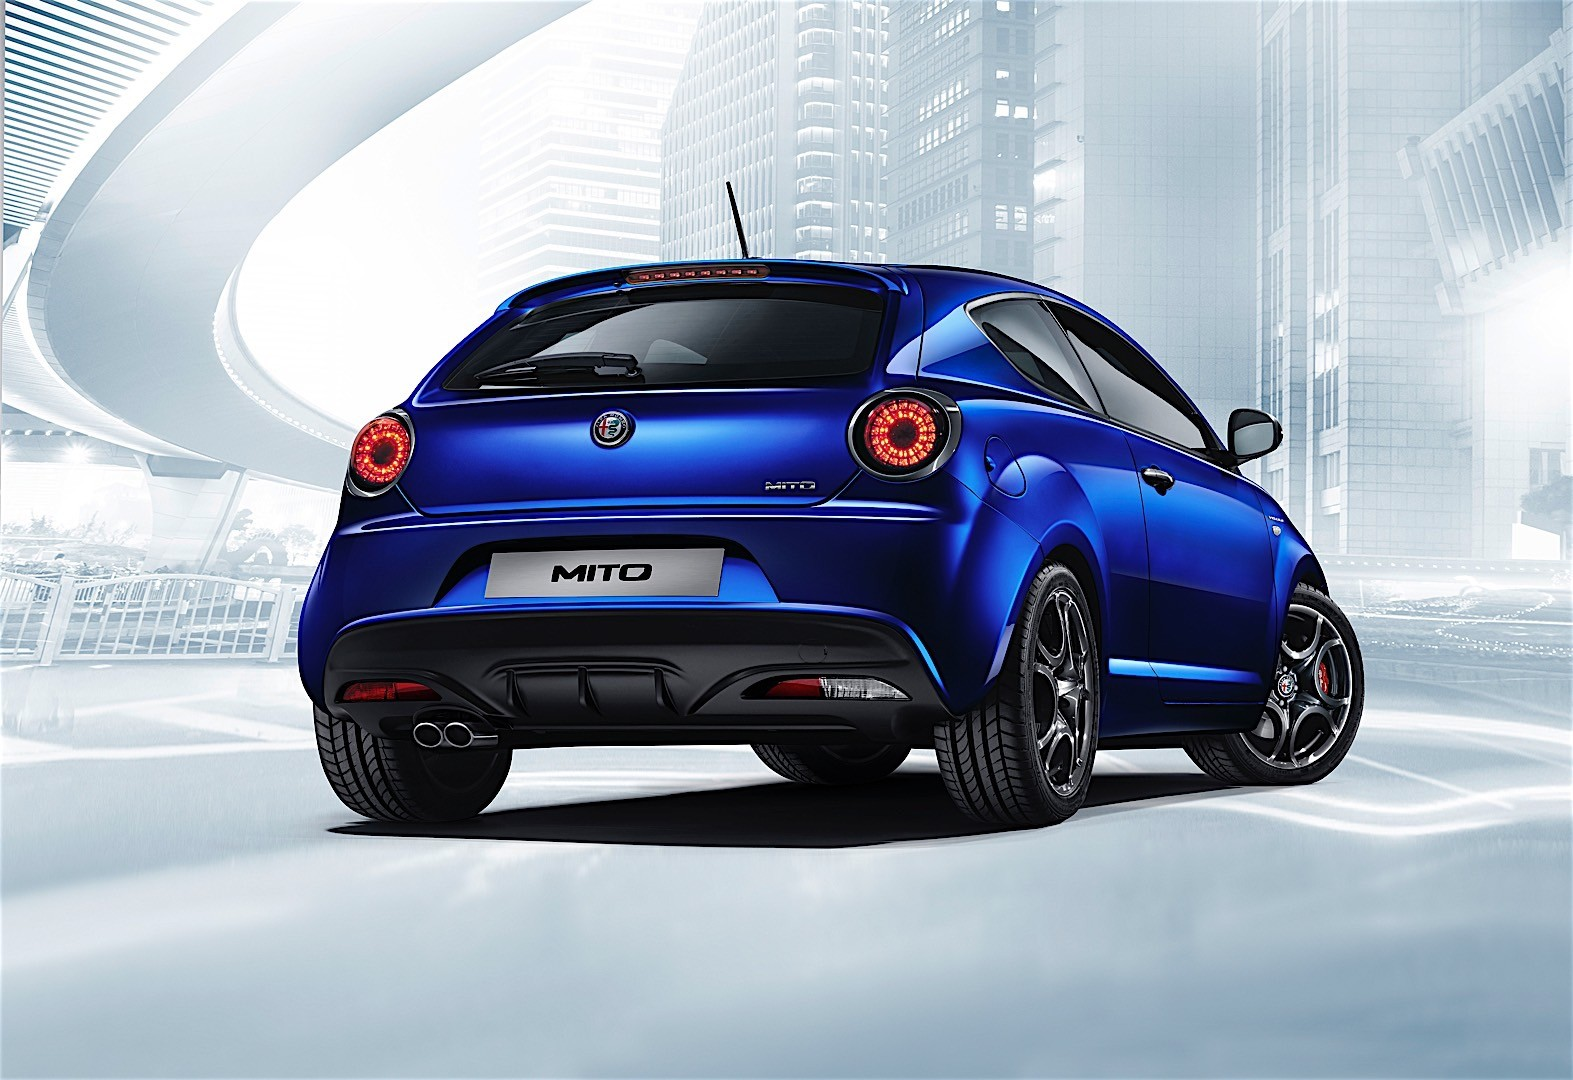 alfa romeo mito veloce 2016 2017 autoevolution. Black Bedroom Furniture Sets. Home Design Ideas